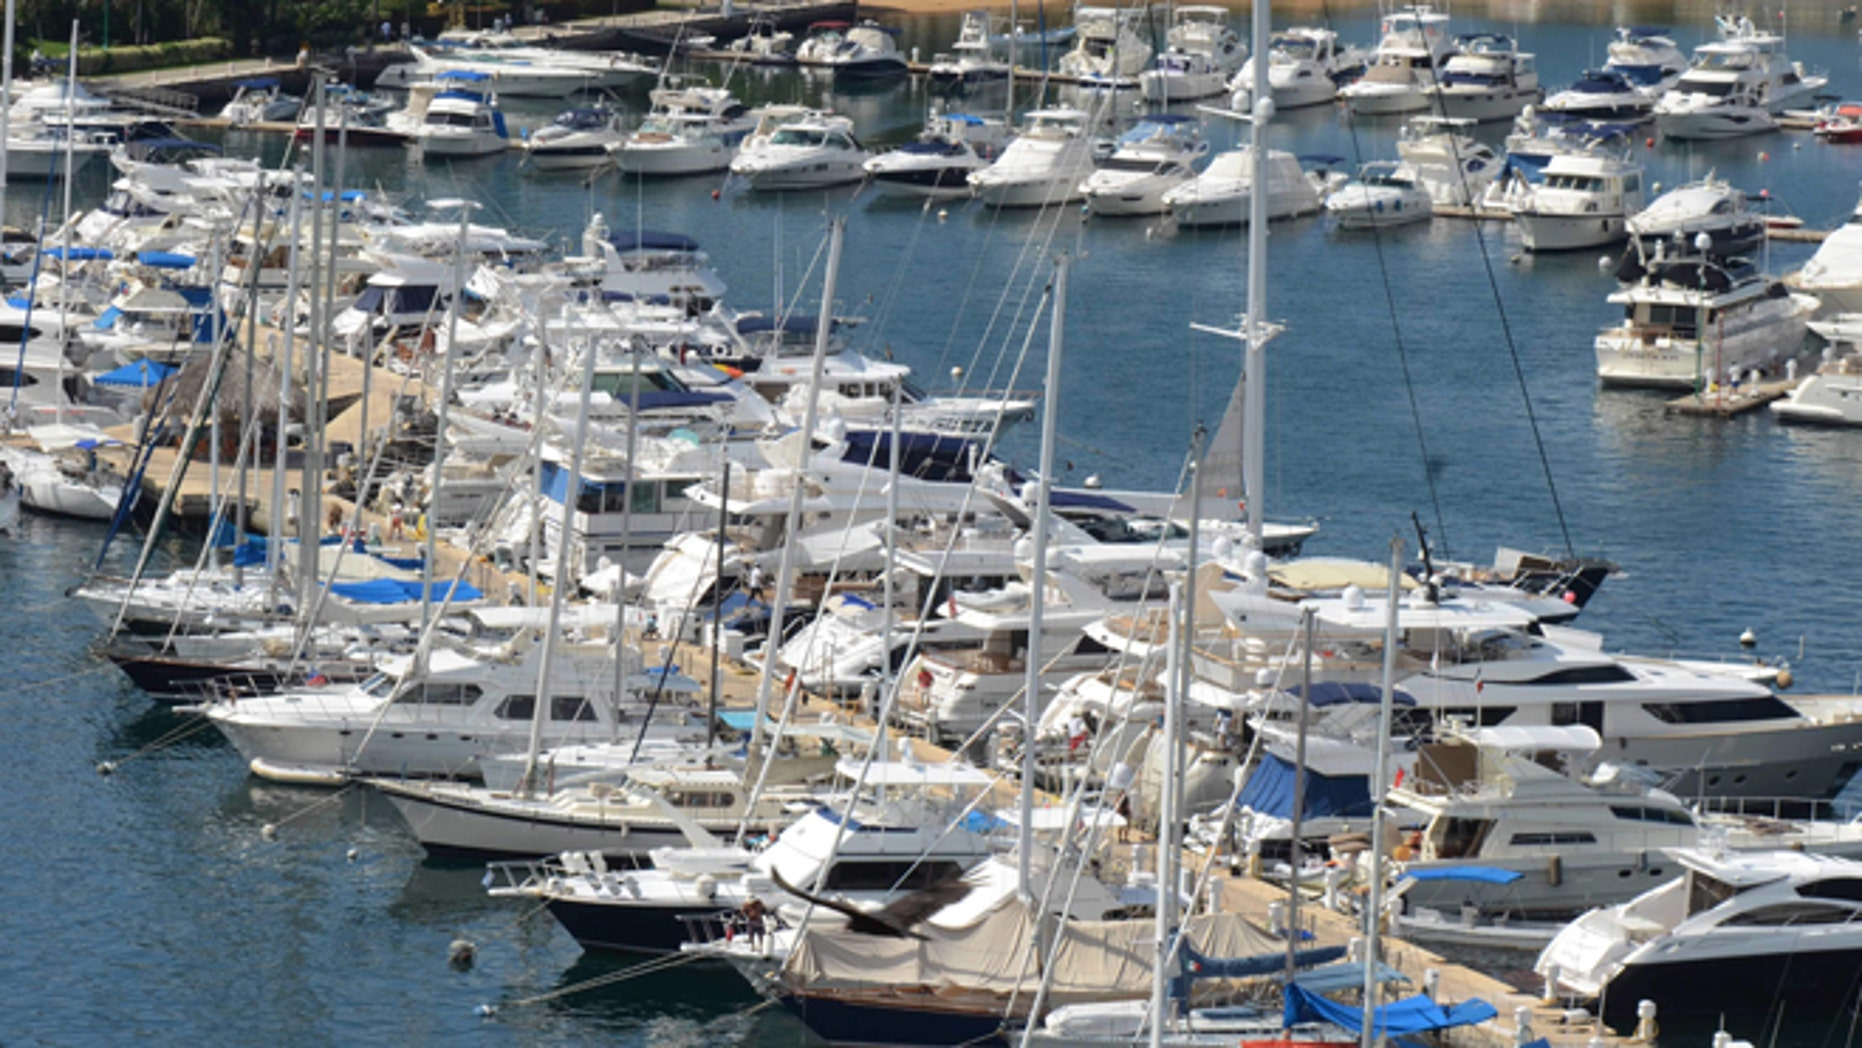 In this Tuesday,  Jan. 7, 2014 photo, yachts are docked at a marina in the Bay of Acapulco, Mexico. After inspecting more than 1,600 vessels in late November, the Mexican governmentâs Treasury Department announced it had initiated seizure orders against hundreds of foreign boats it accused of lacking a temporary import permit which proves that the holders own their boats and promise not to leave them in Mexico or sell them here. Many boat owners say they simply werenât around when authorities came by and slapped liens on the boats barring them from leaving Mexico, and say officials have not told them how they could remedy the situation.  Foreign pleasure boat owners call this a heavy-handed crackdown over a minor permit, and they say it threatens a tourism sector Mexico has long sought to promote. (AP Photo/Bernandino Hernandez)